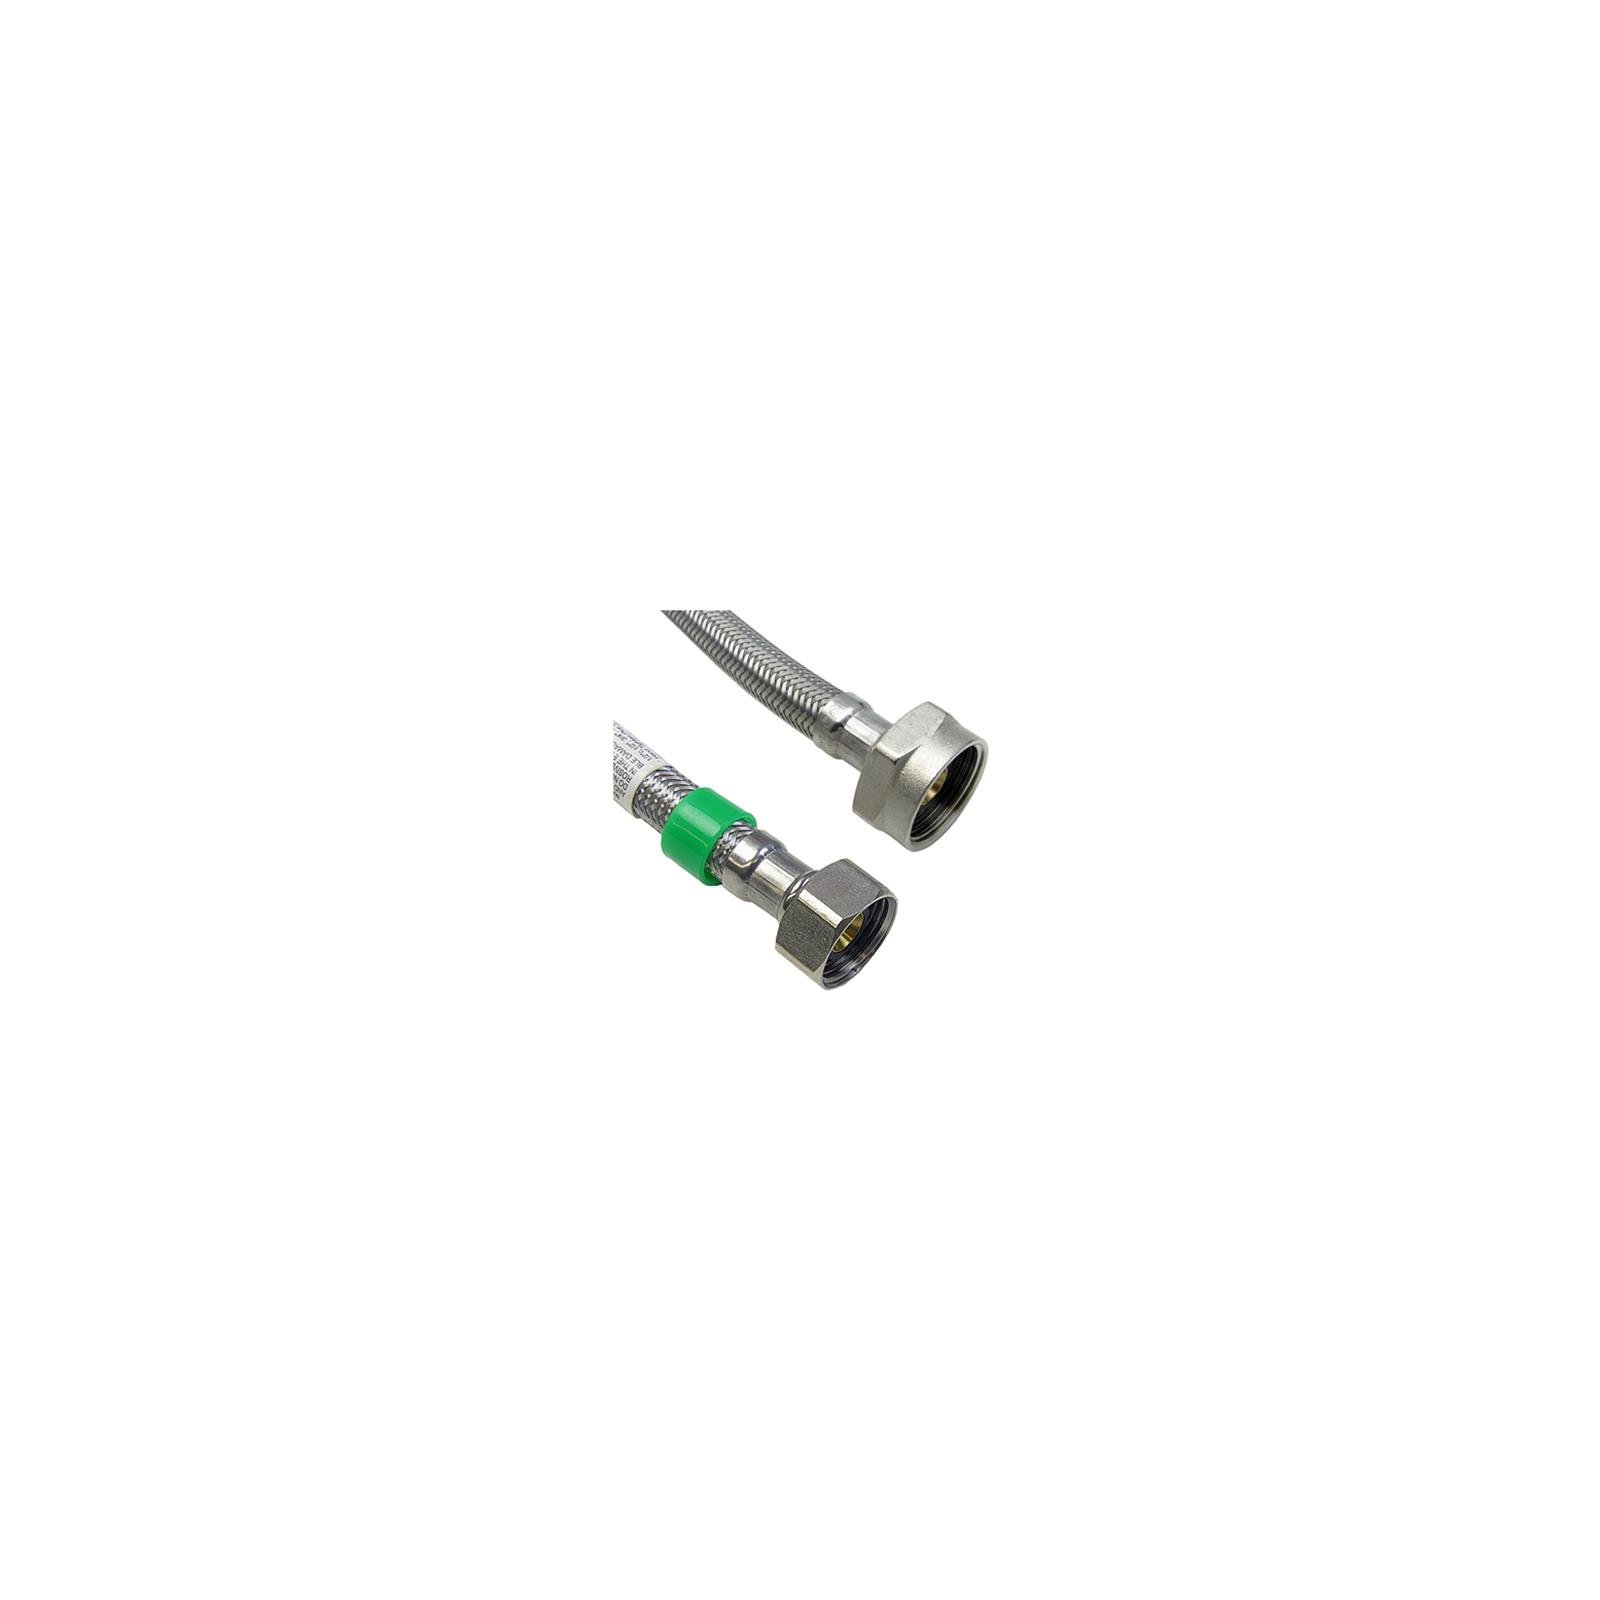 Larsen Supply 10-0821 Toilet Connector, Stainless Steel, 1/2 x 7/8 x 20-In. - Quantity 10